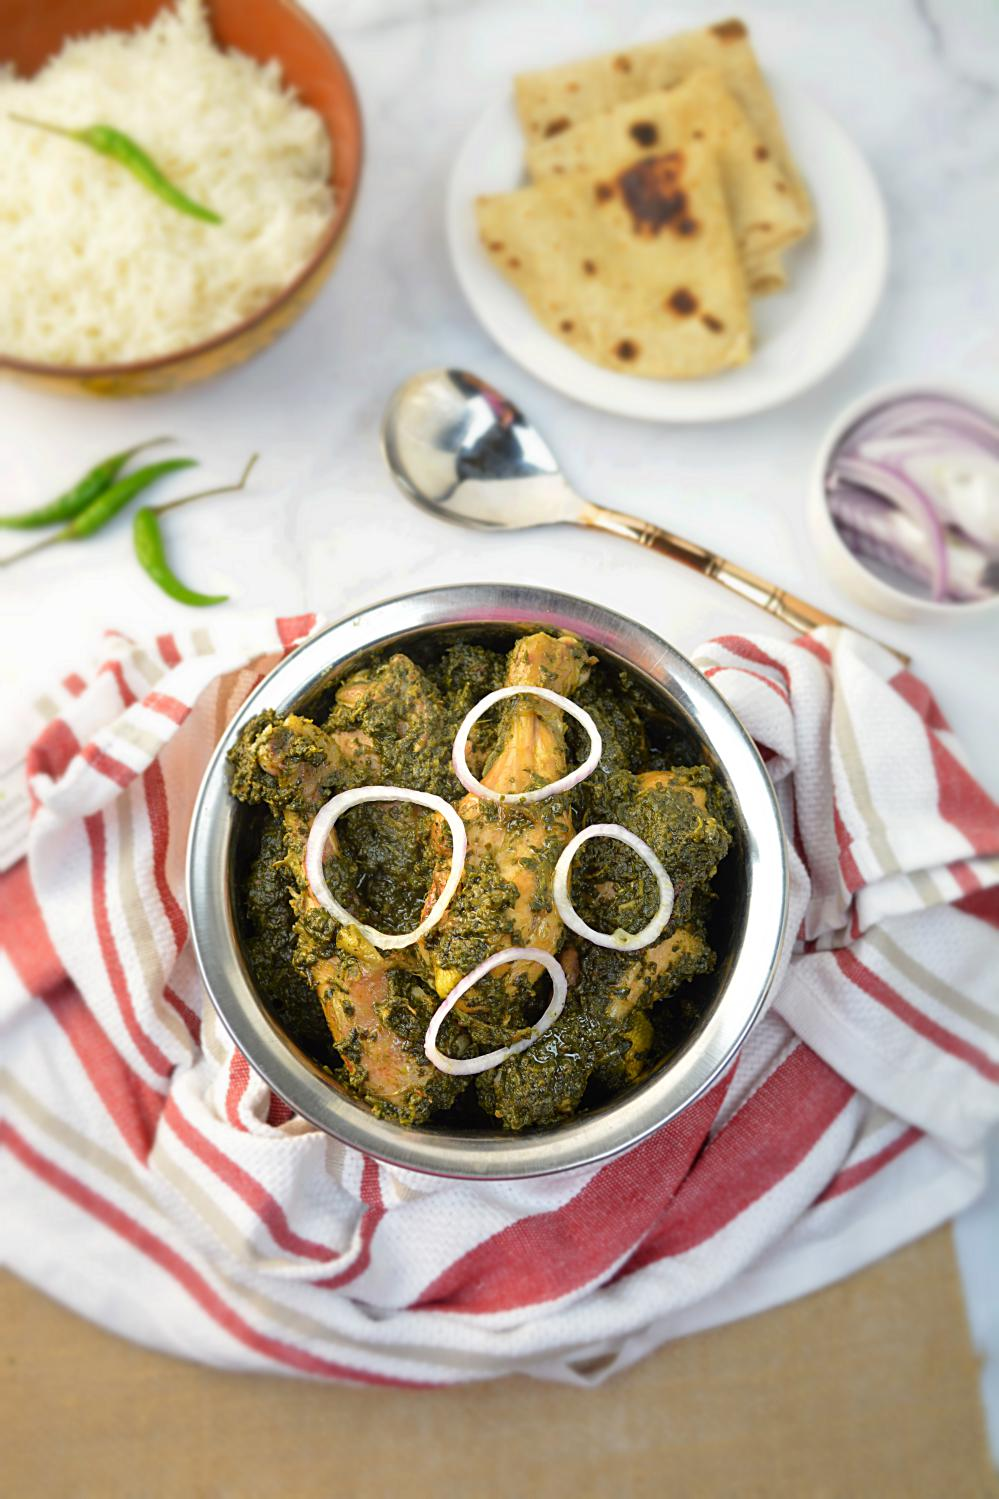 Saag Wala Chicken or Palak Chicken